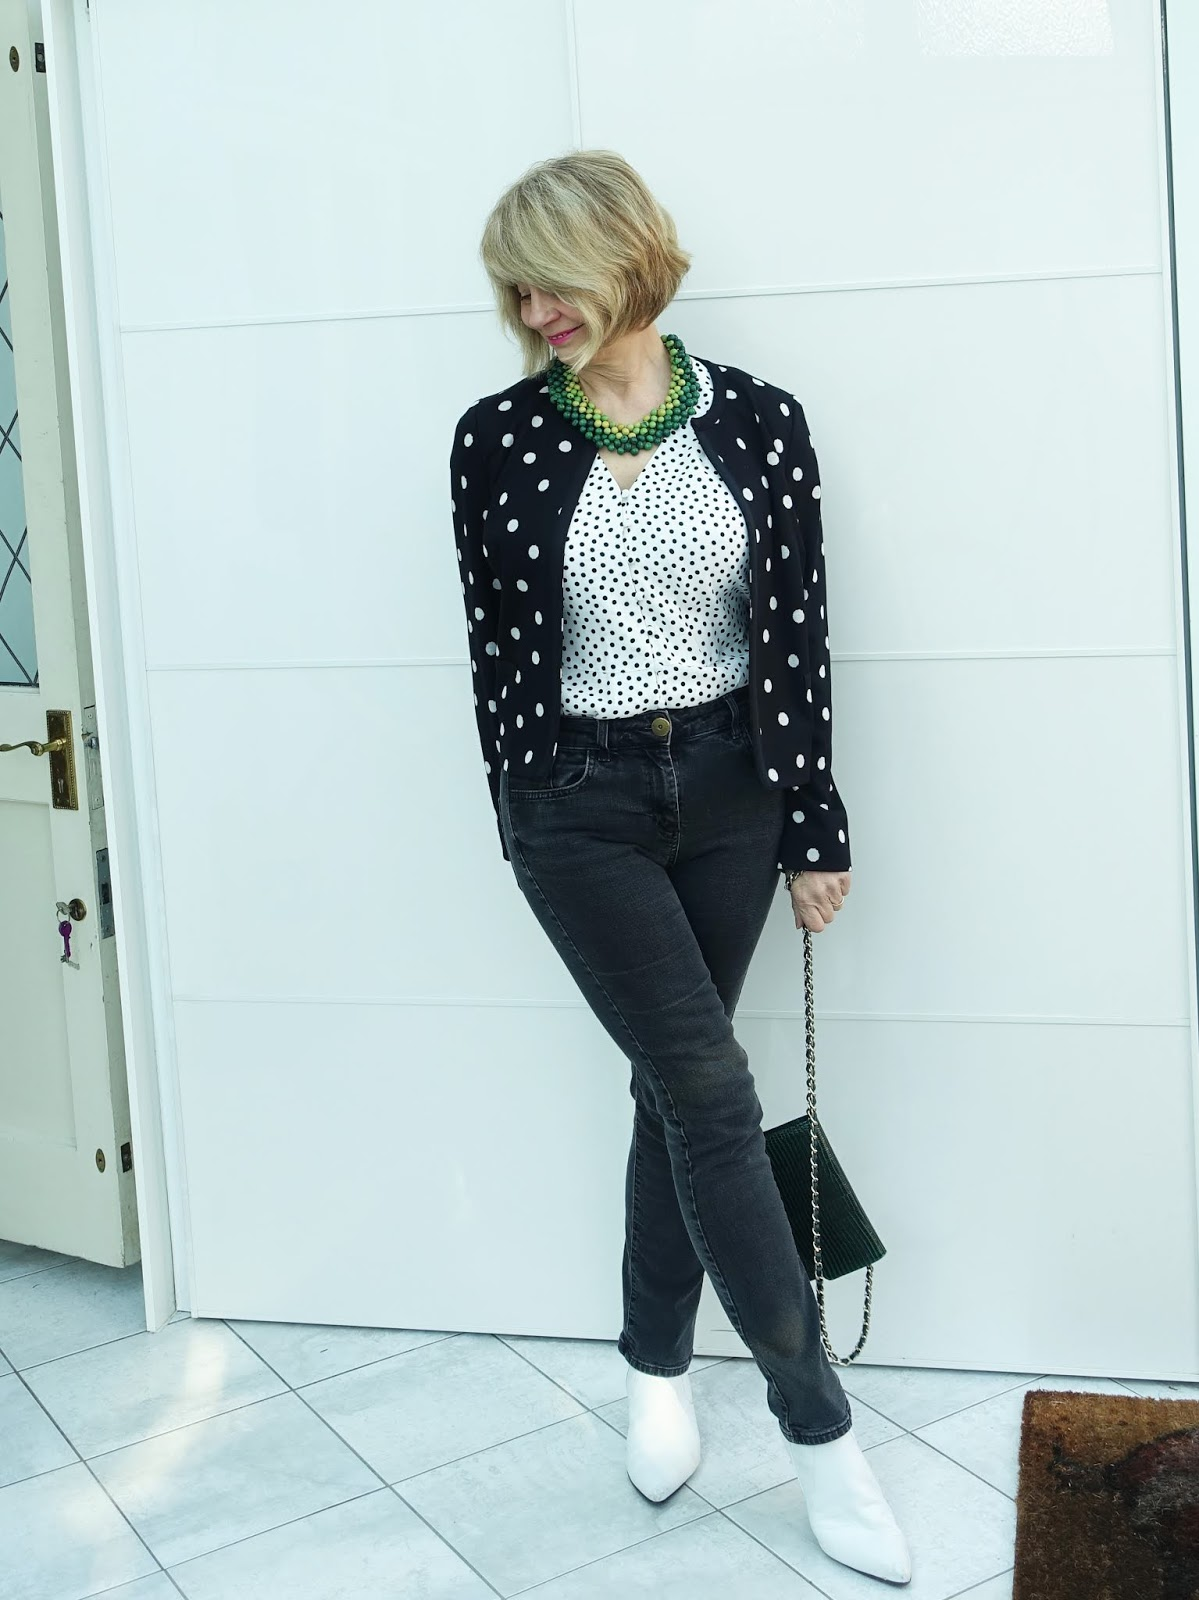 Top of the World Style Winner Gail in double polka dots and jeans